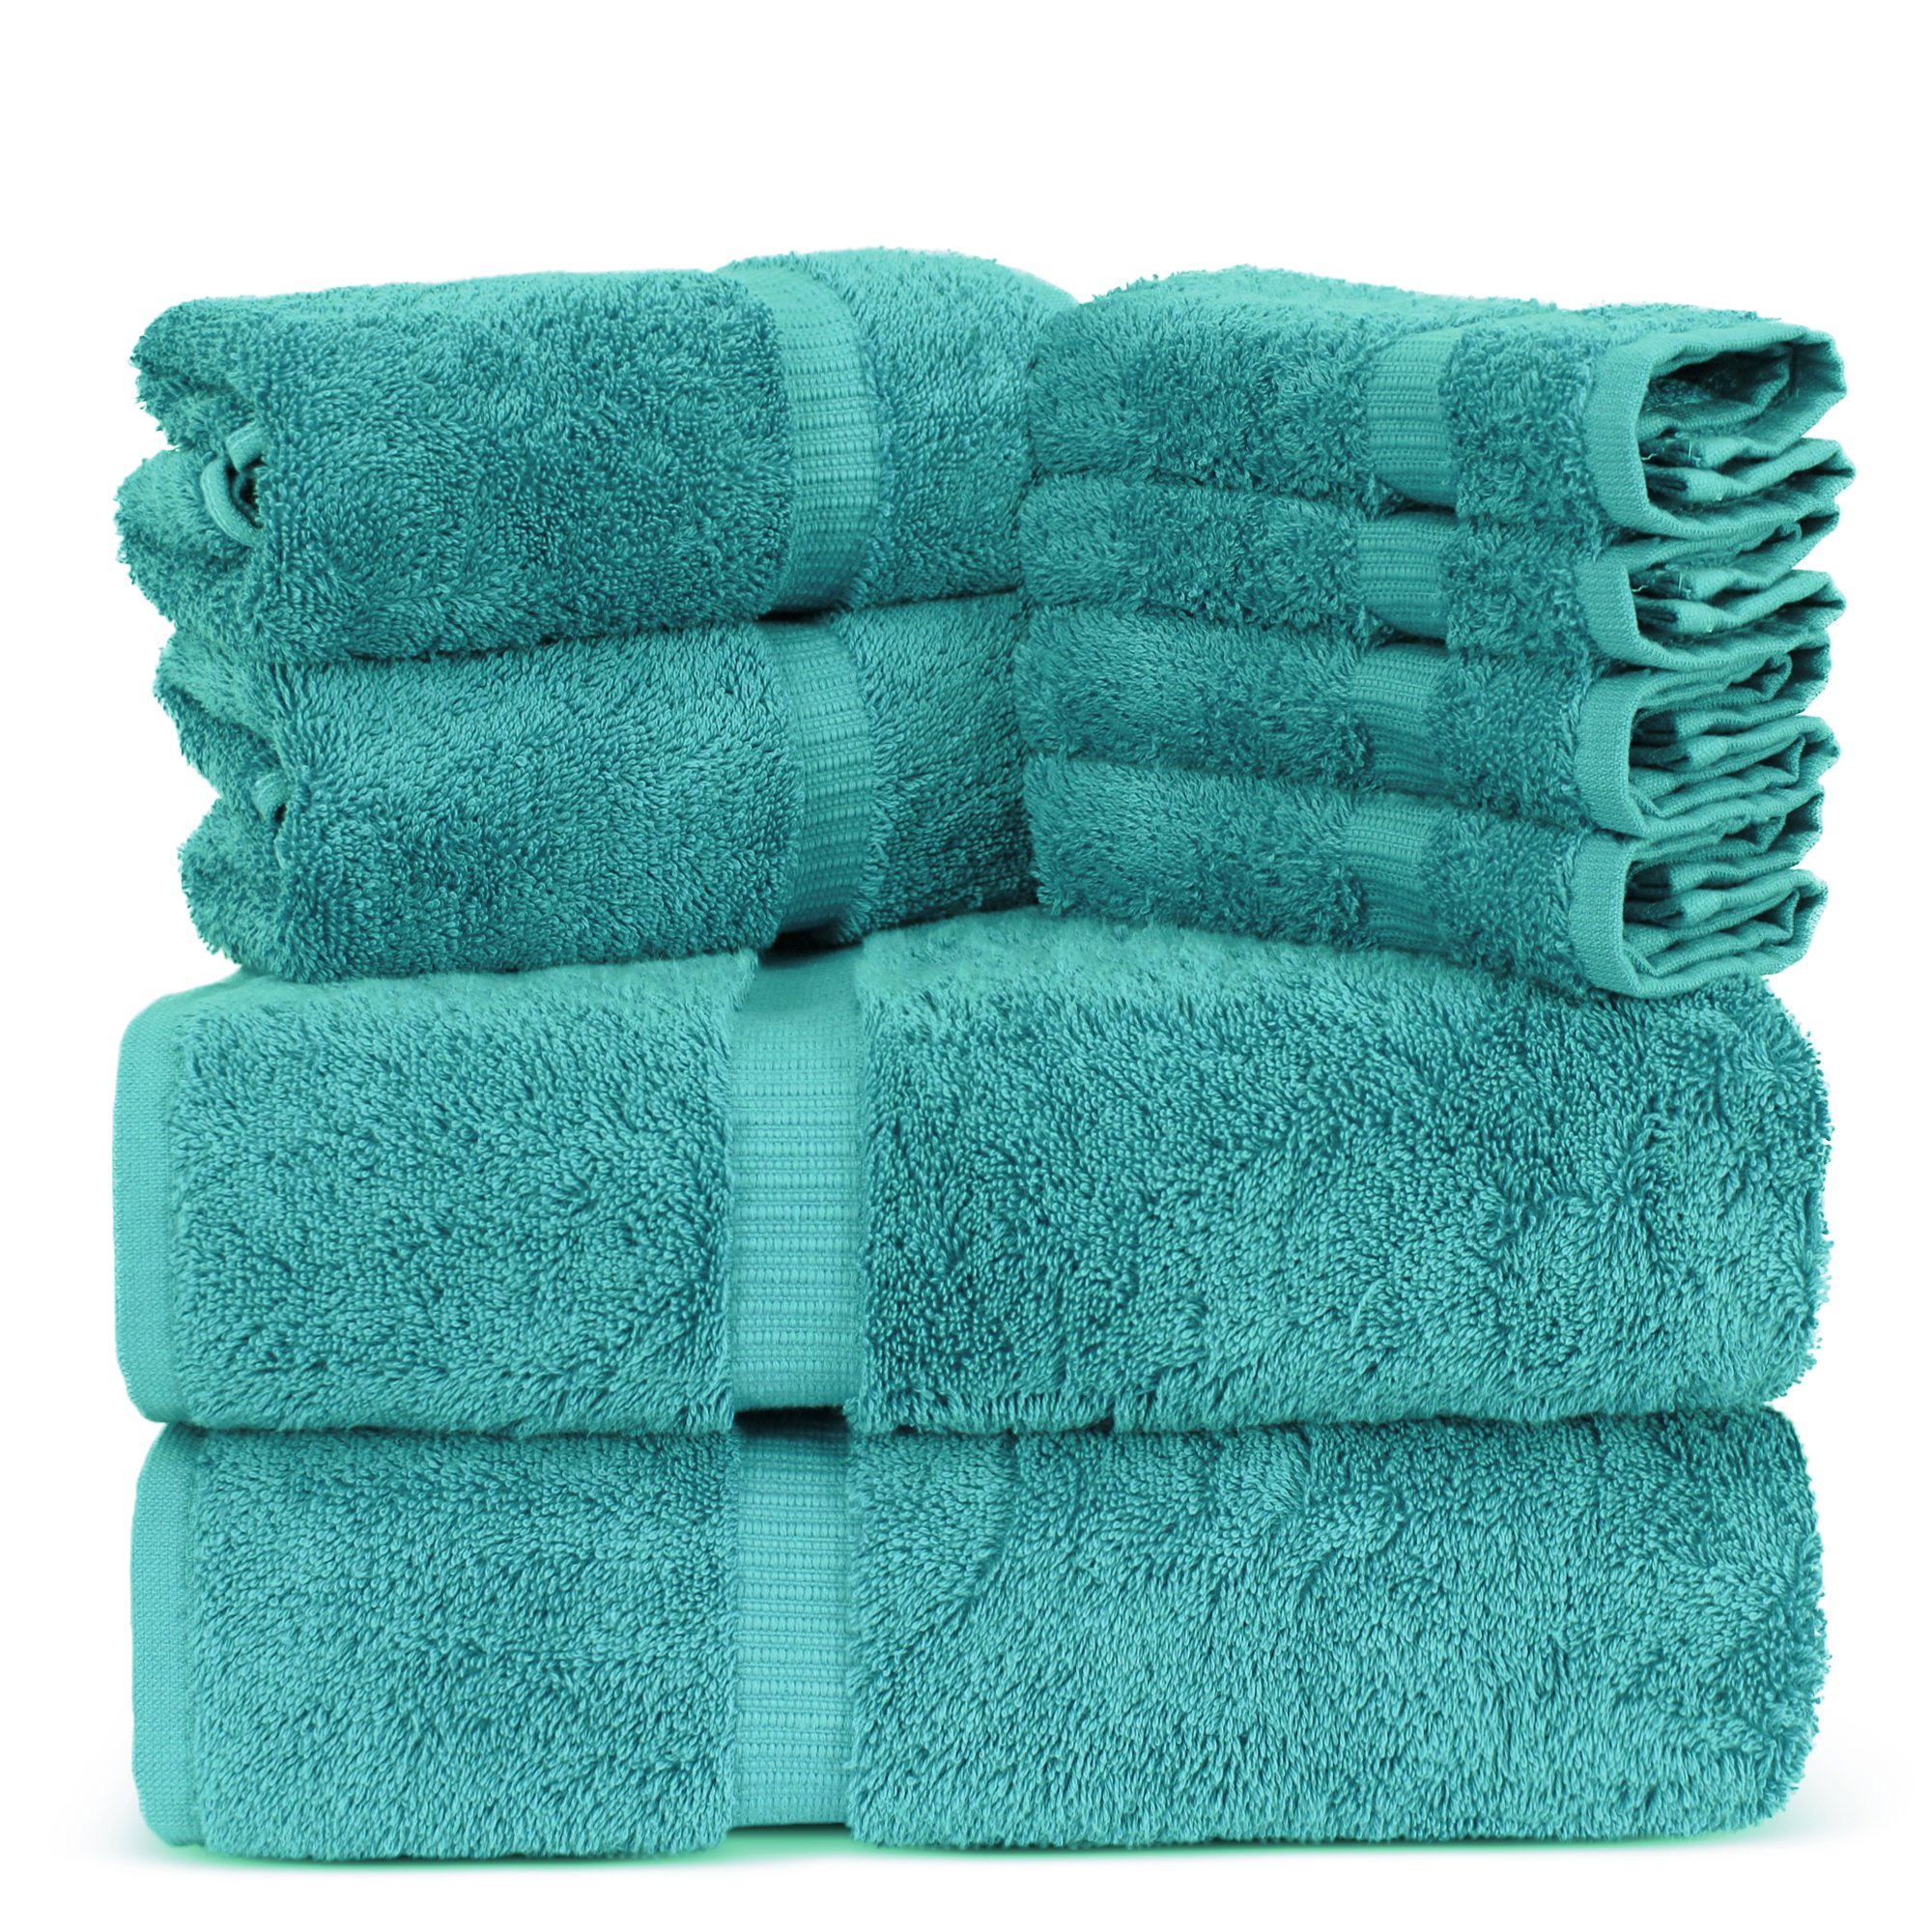 Towel Bazaar Luxury Hotel and Spa Quality Dobby Border 100% Turkish Cotton Eco-Friendly and Highly Absorbent Towel Set (Set of 8, Aqua Blue) by Towel Bazaar